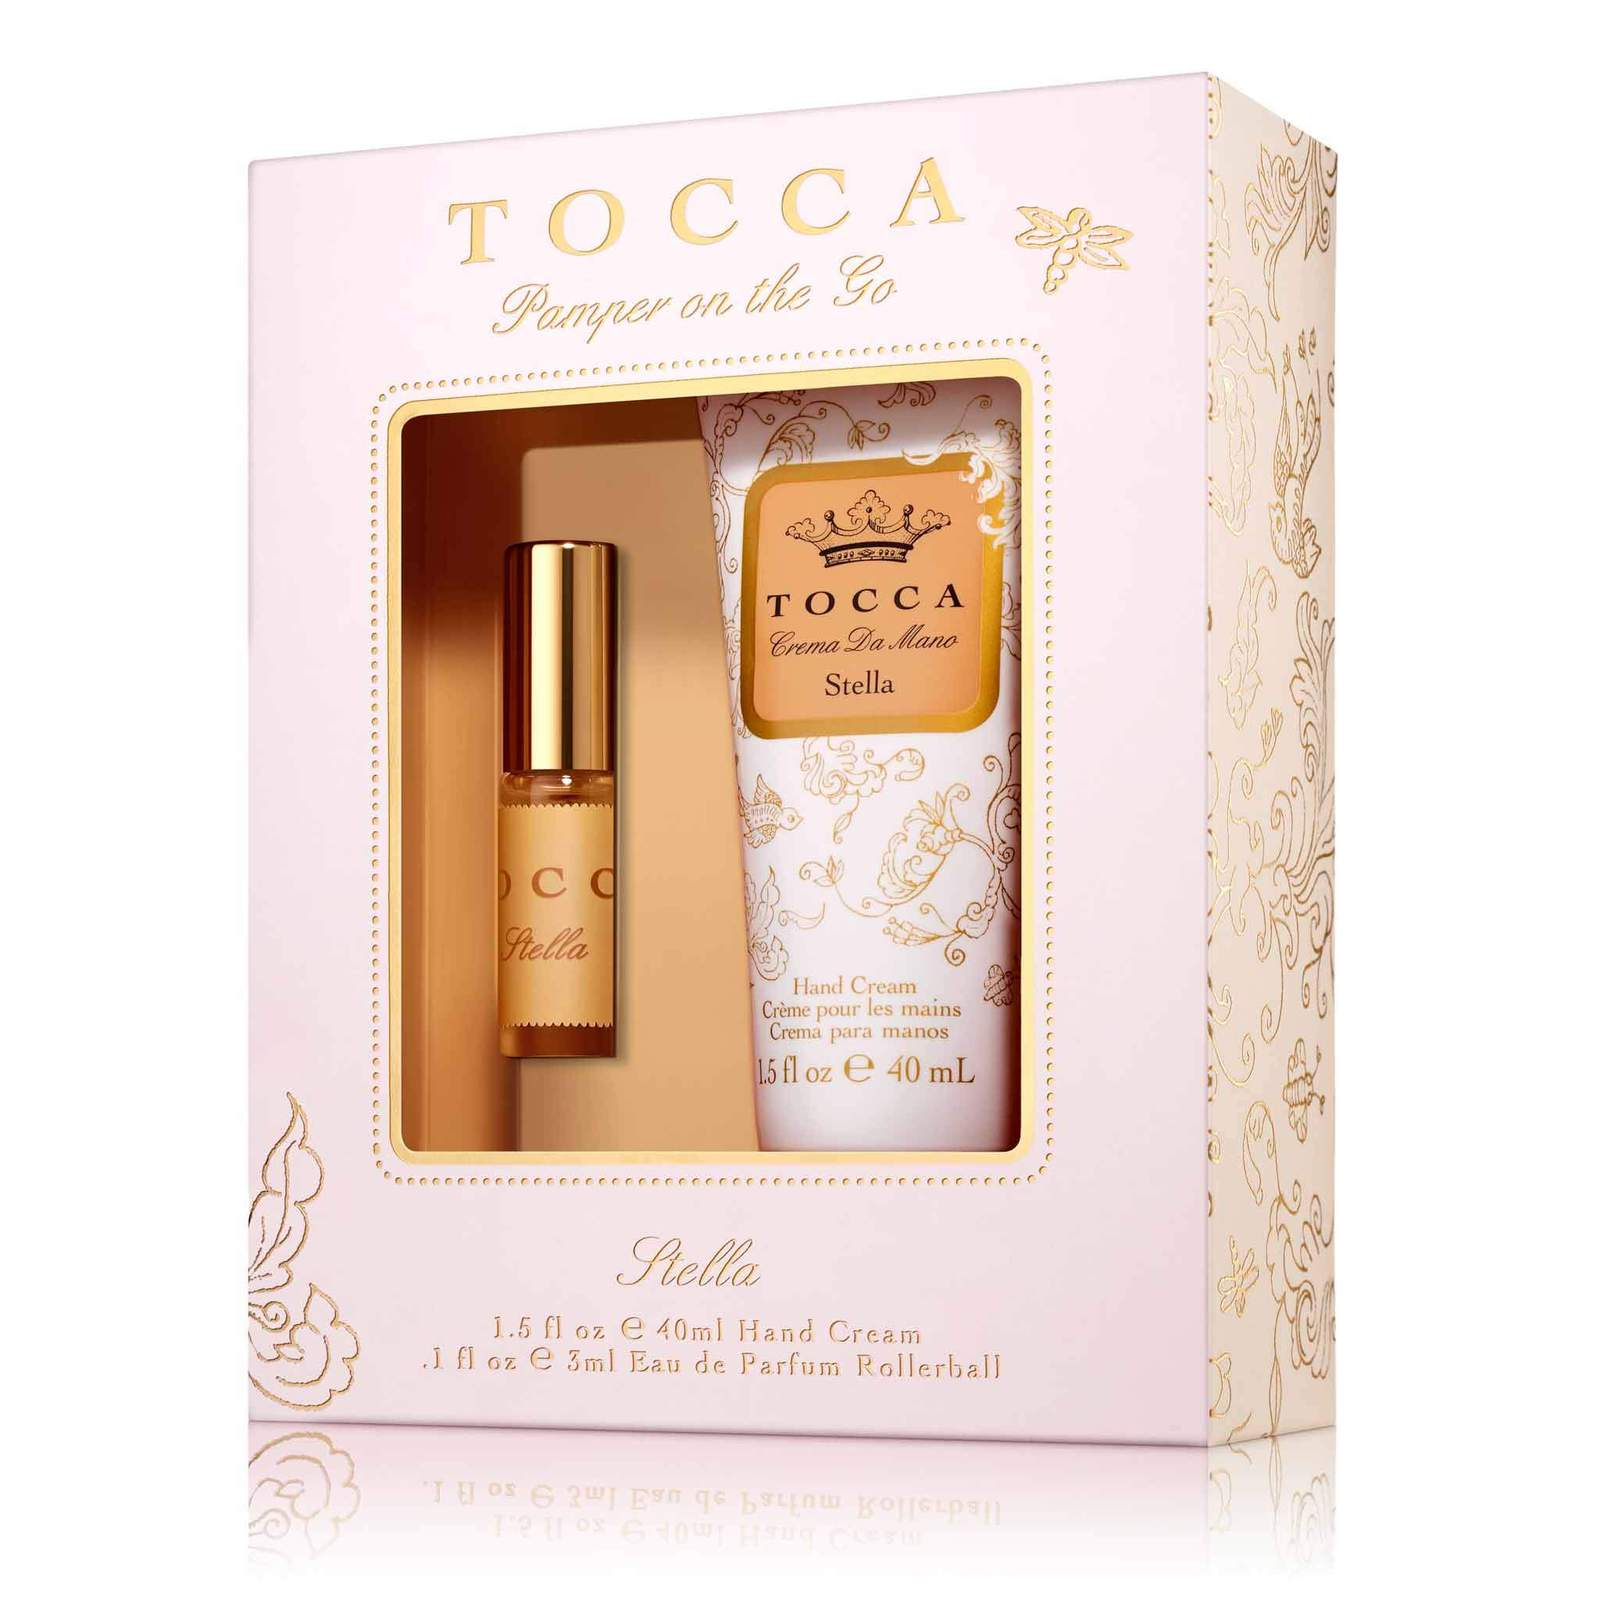 Primary image for Tocca Stella Pamper on the Go Gift Set